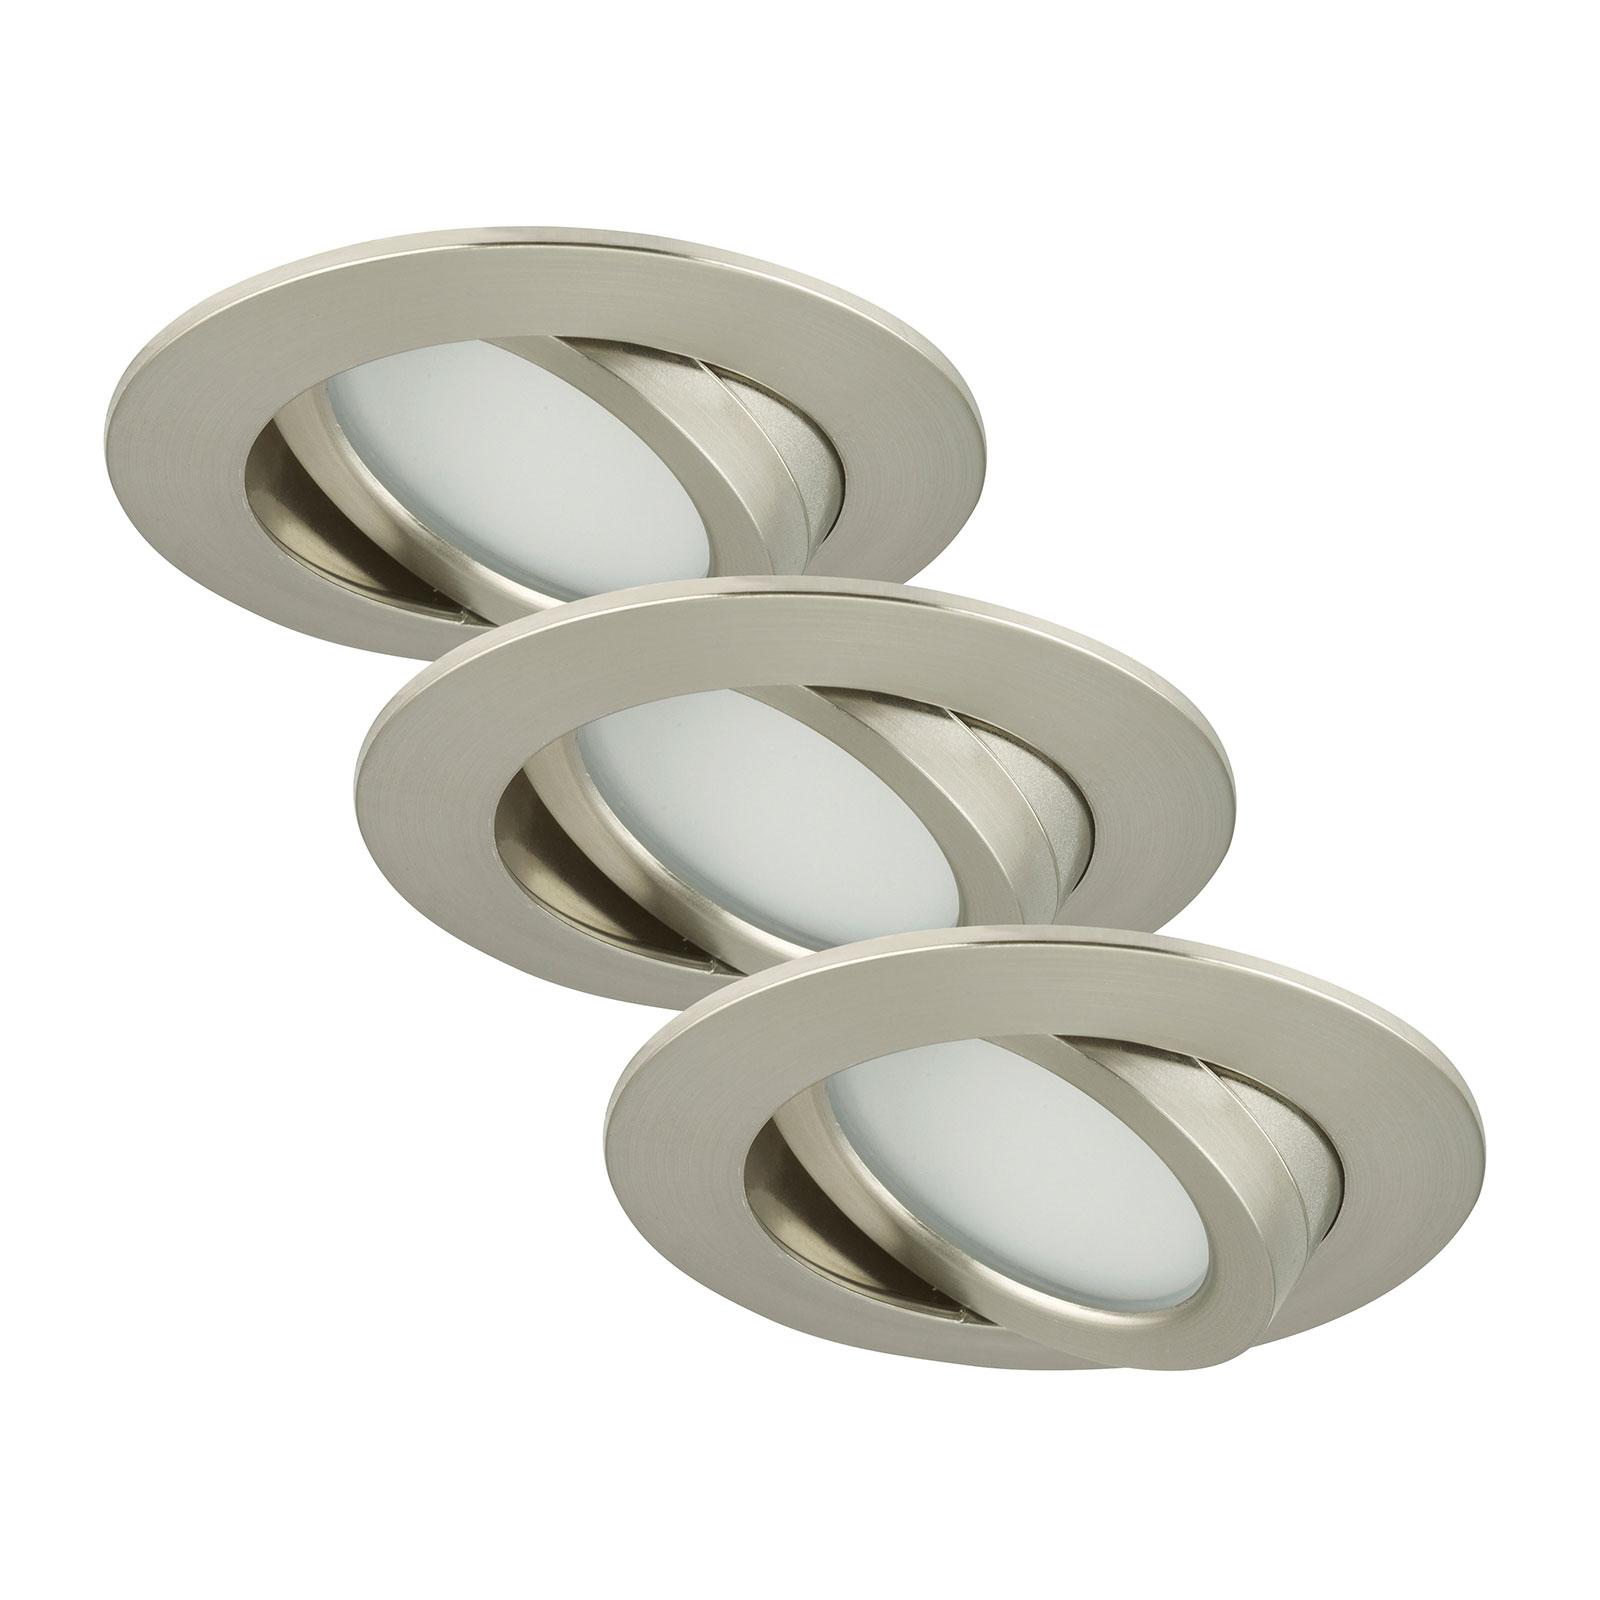 Set of 3 pivotable LED recessed lights Bert,nickel_1510327_1